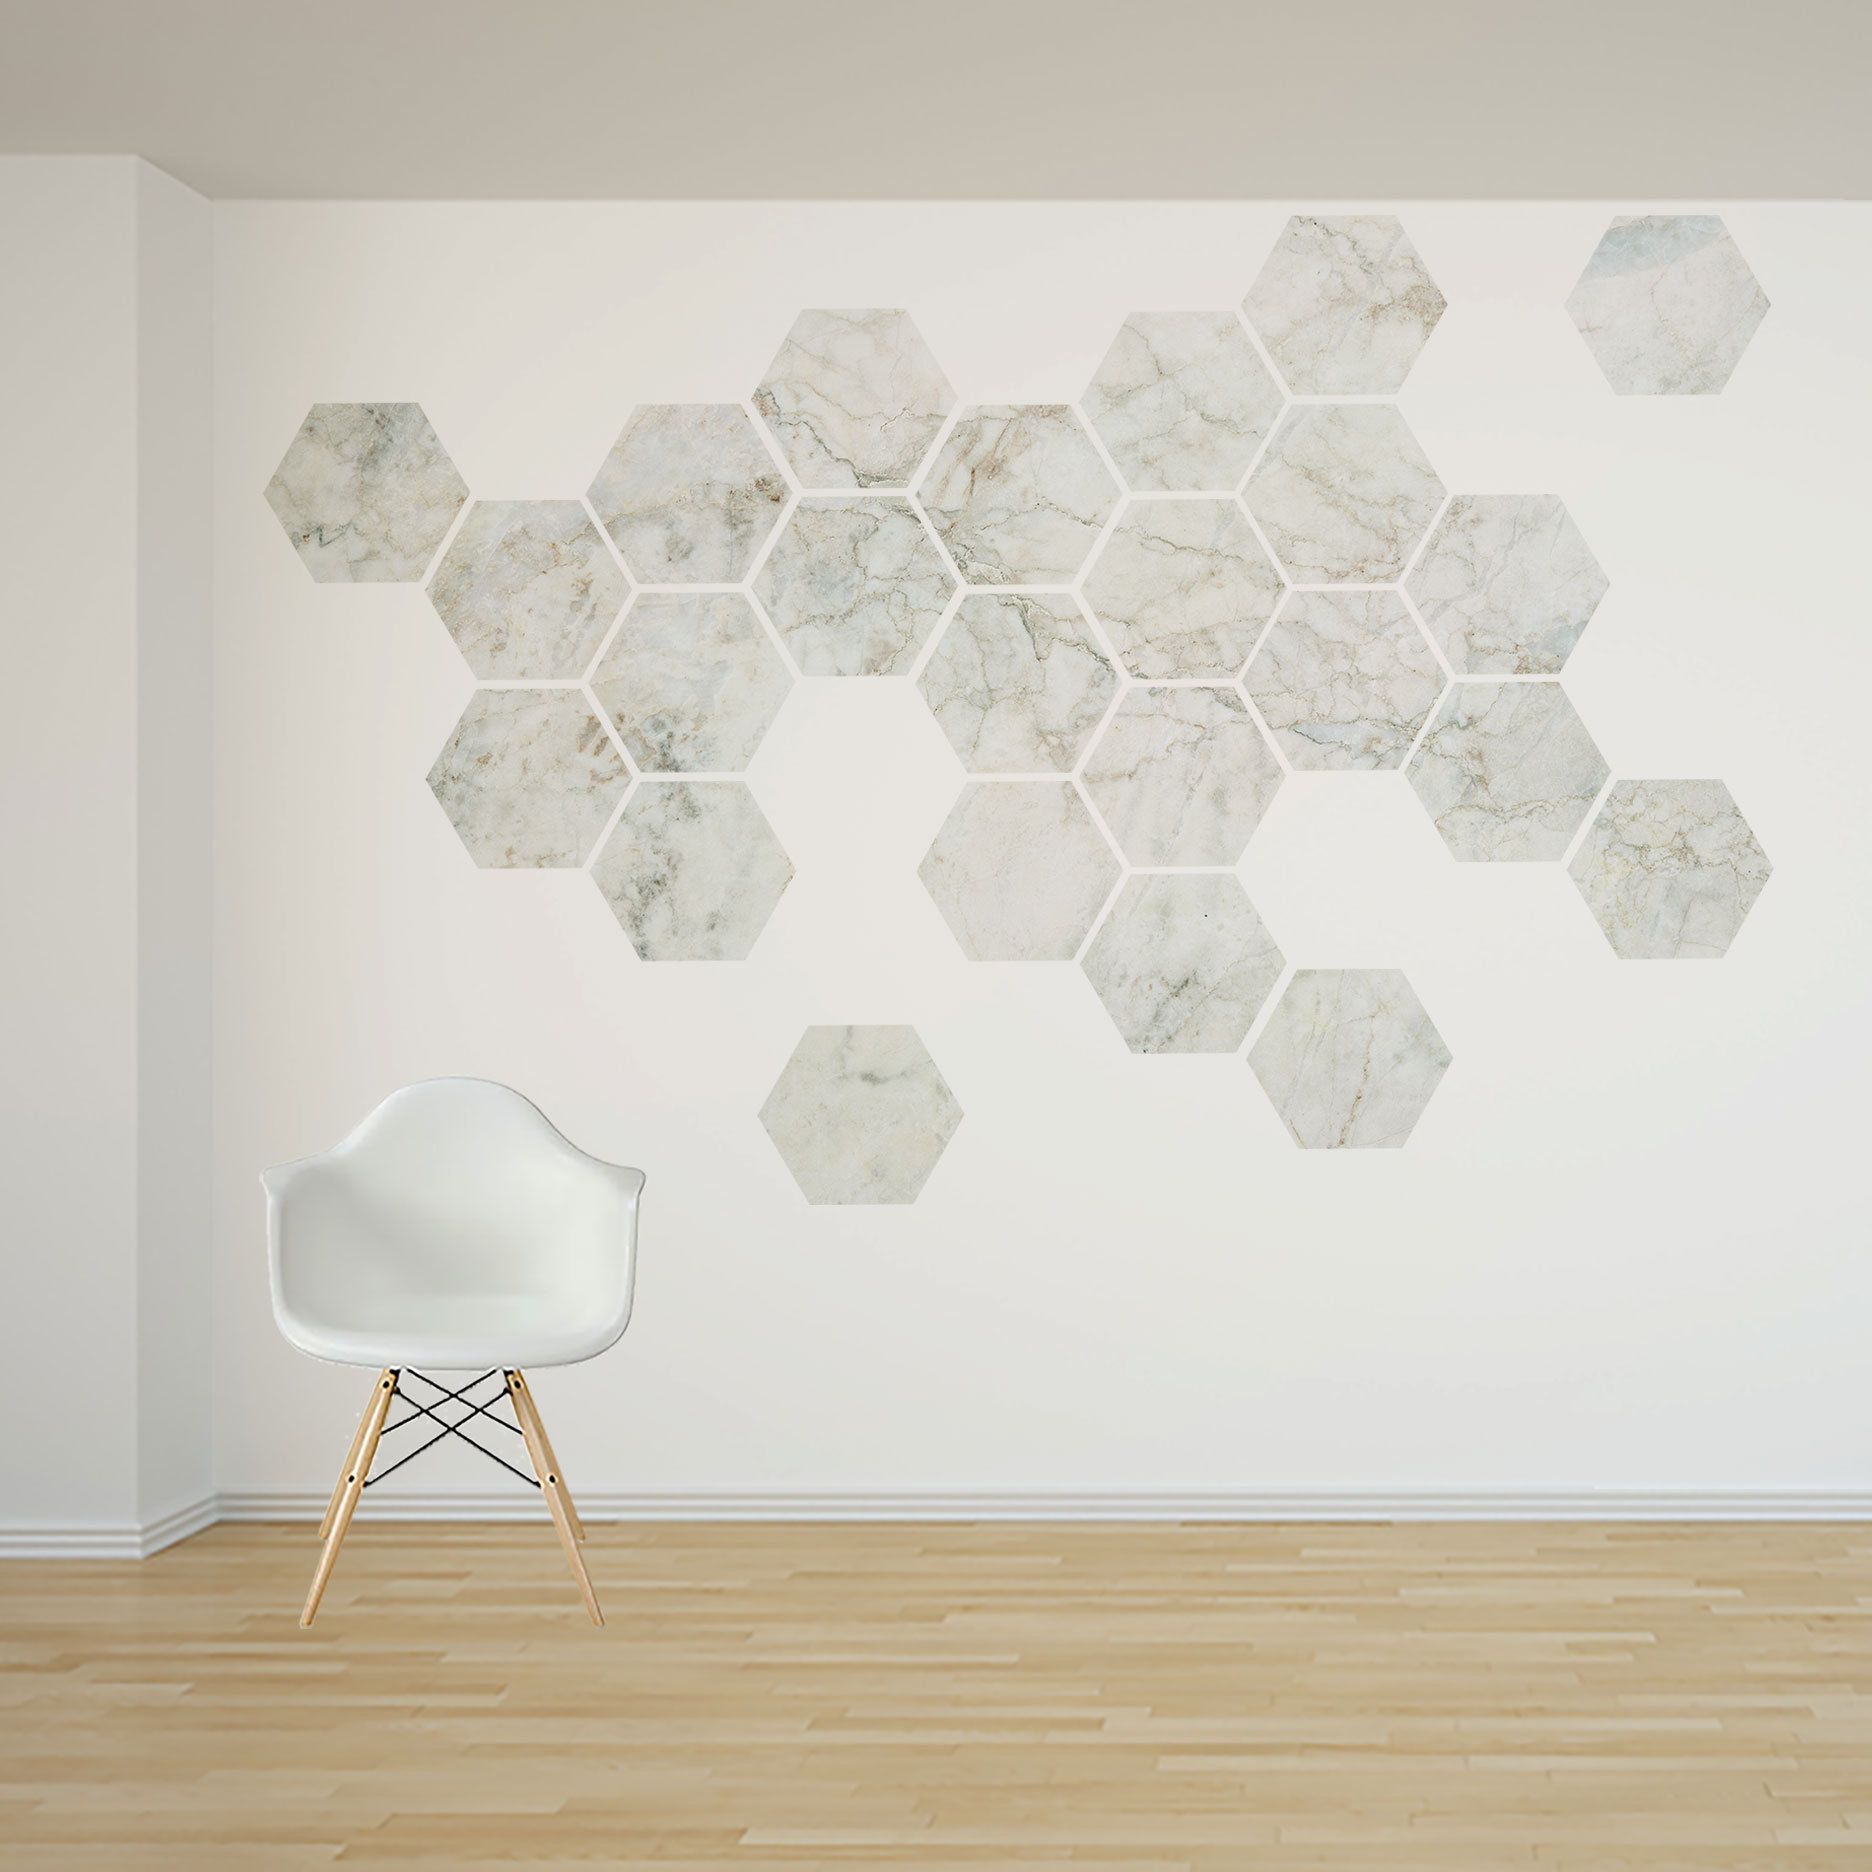 Removable Marble Honeycomb Wall Decal 16 Or 24 Hexagon Stickers